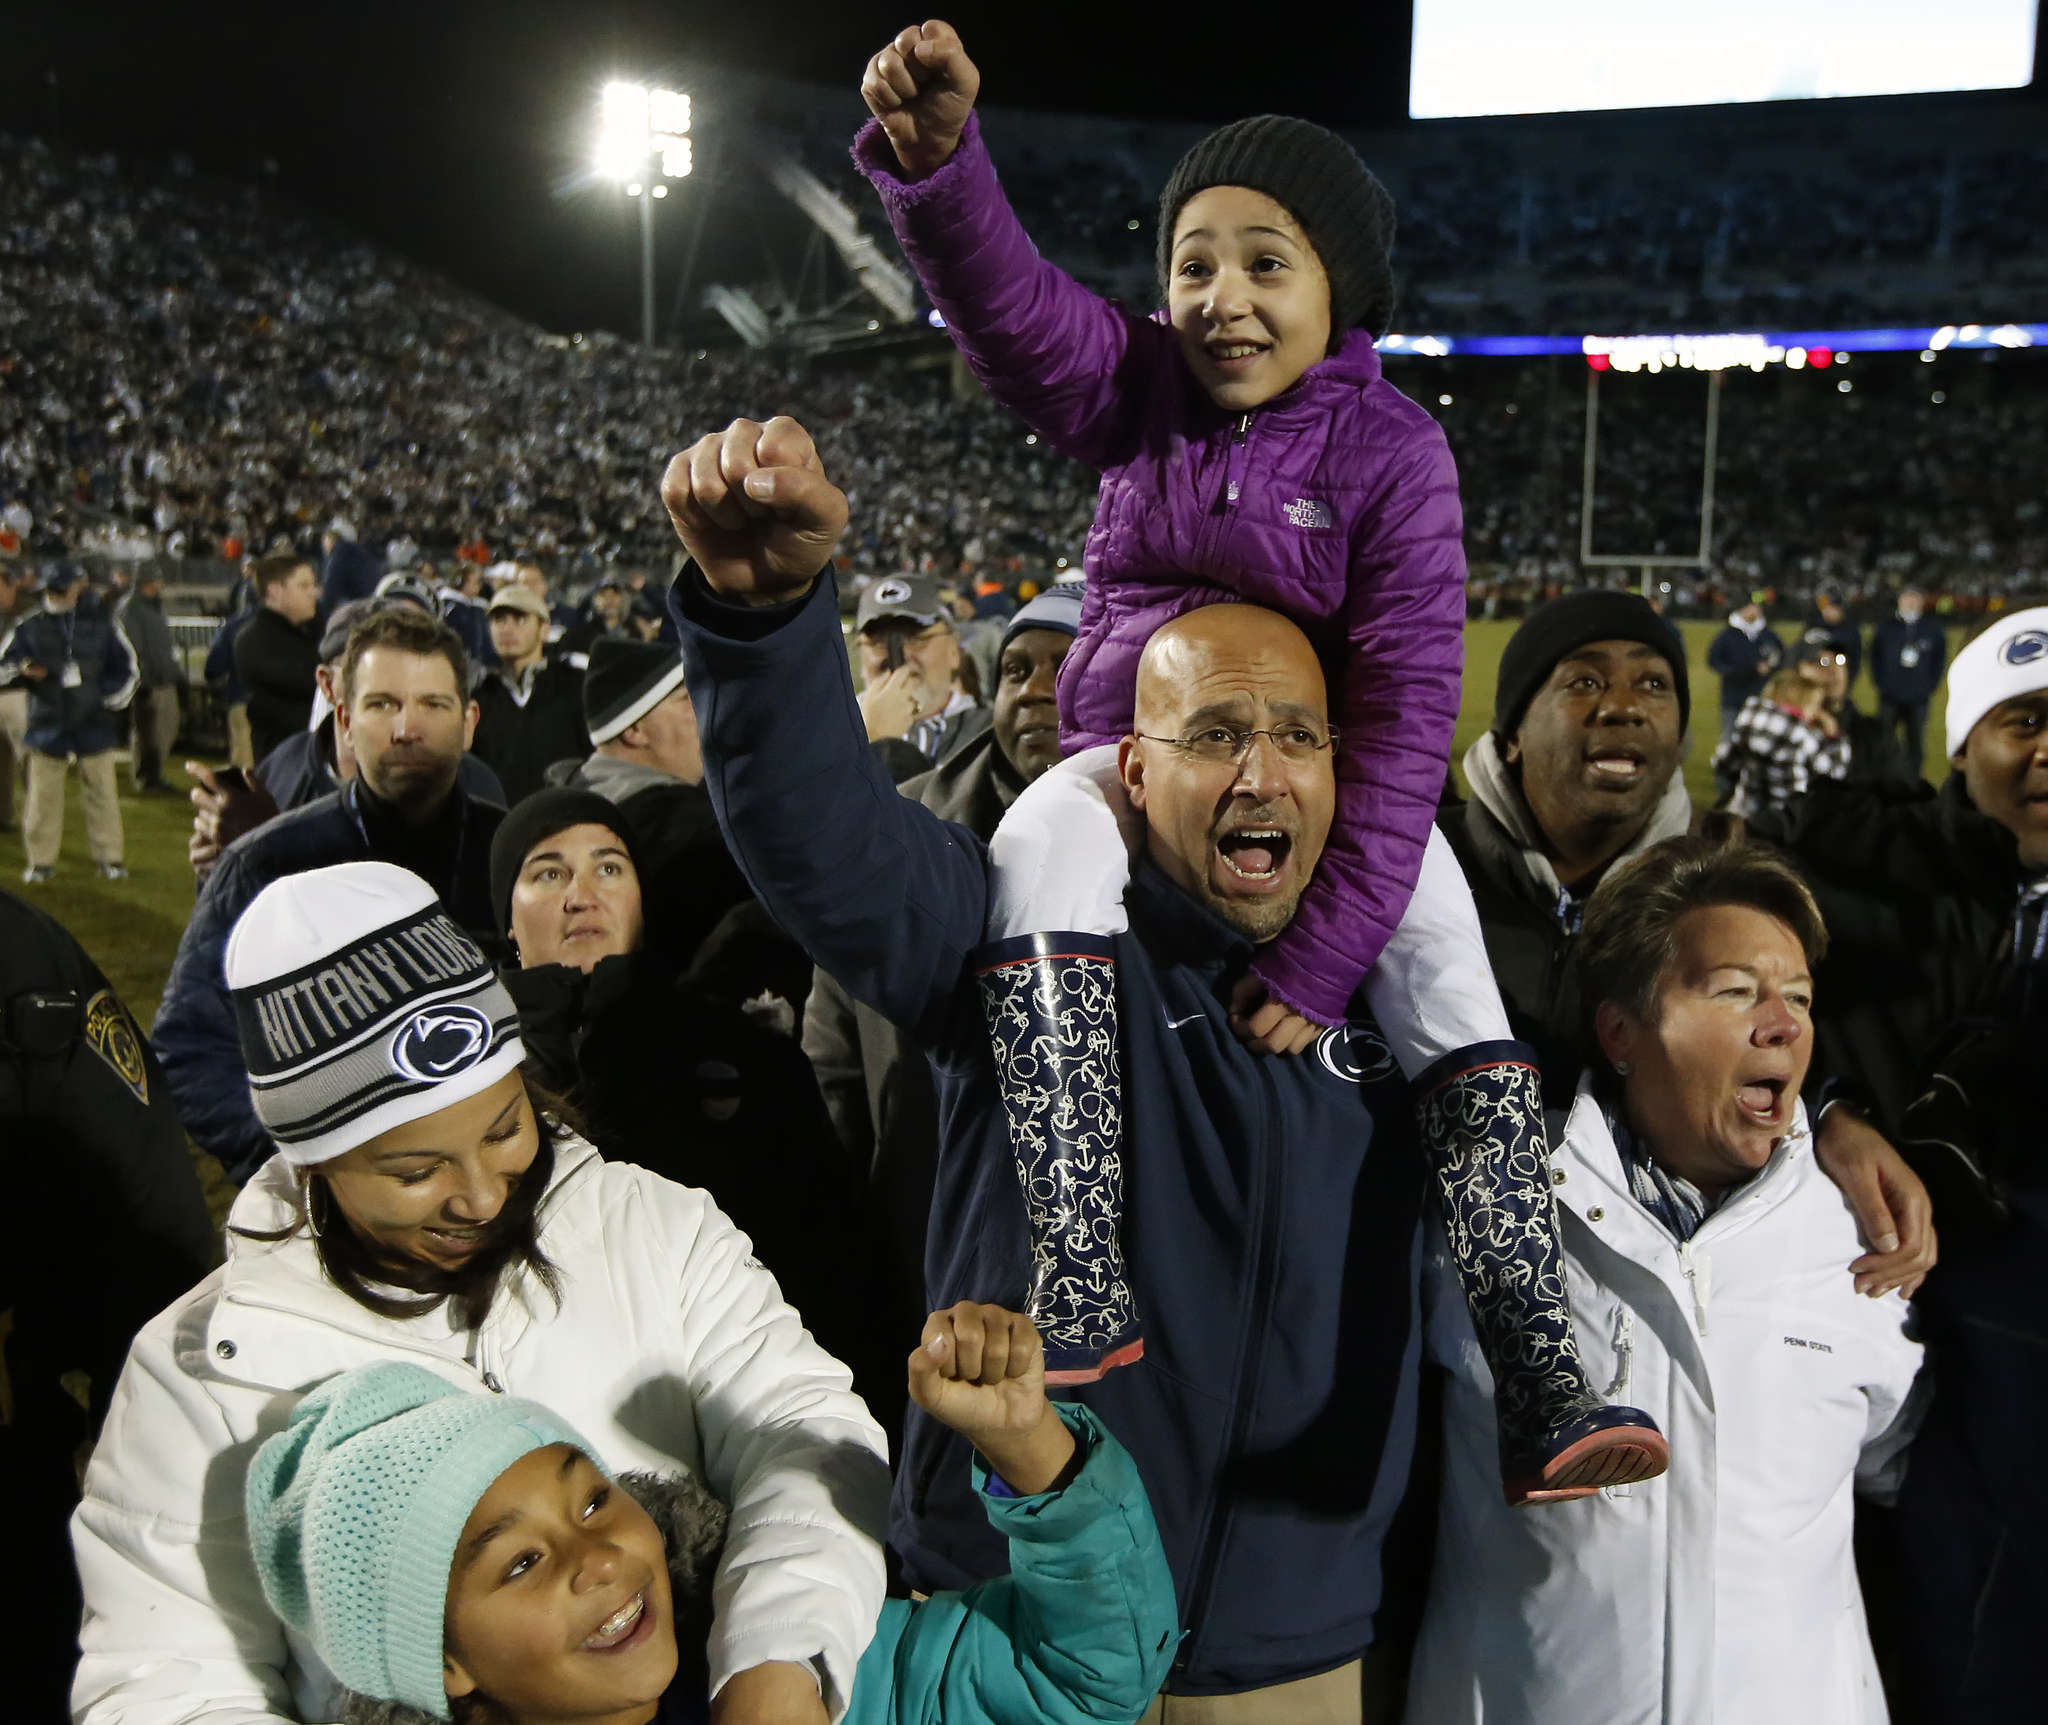 Penn State coach James Franklin carries his daughter Addy Franklin on his shoulders while his wife Fumi Franklin (left) celebrates with daughter Shola Franklin.